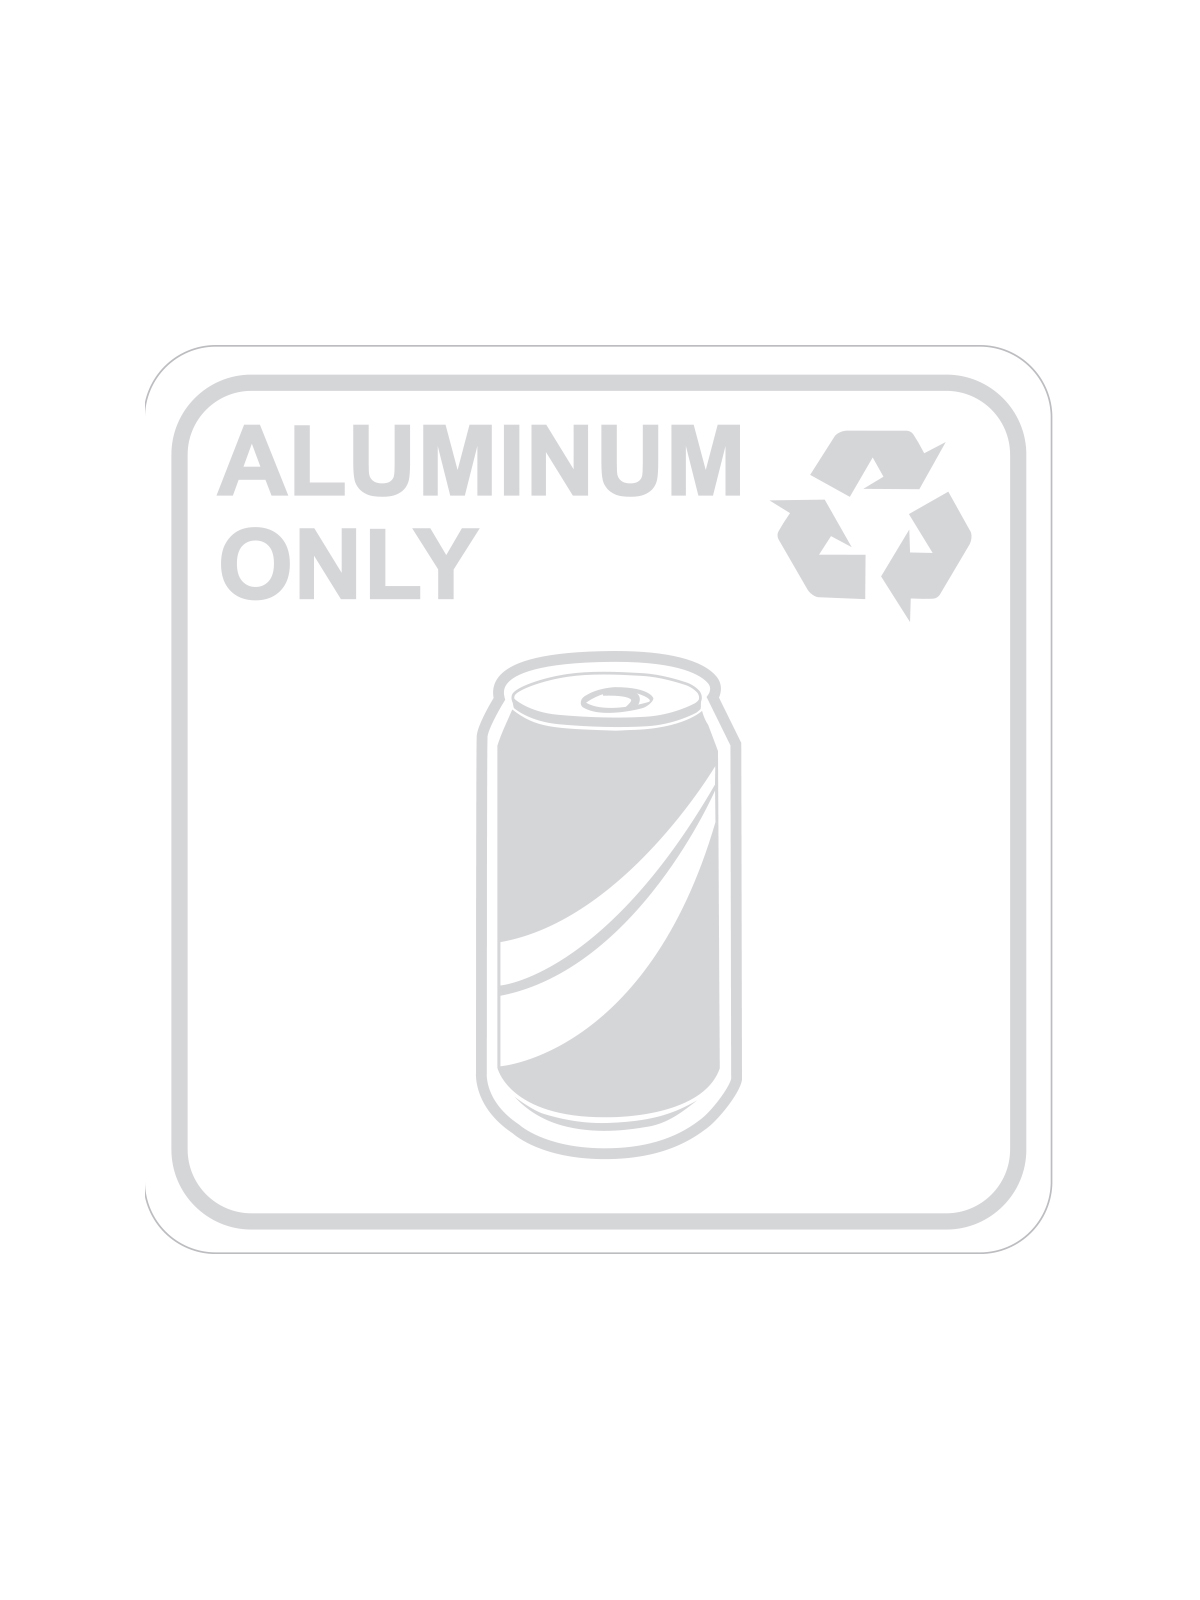 SQUARE LABEL ALUMINUM ONLY